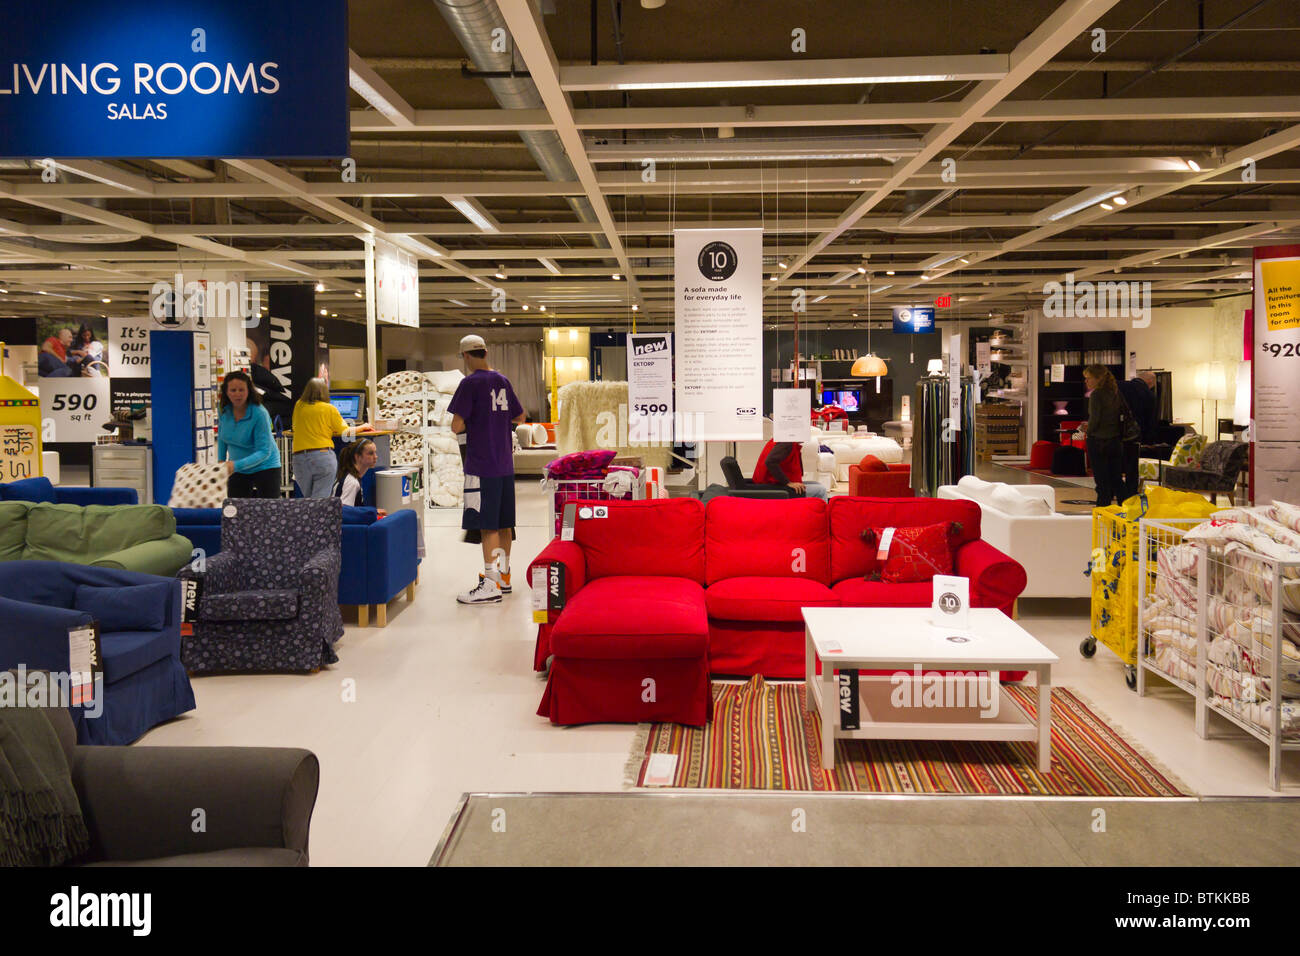 IKEA Furniture Warehouse Store, Plymouth Meeting, Pennsylvania, USA